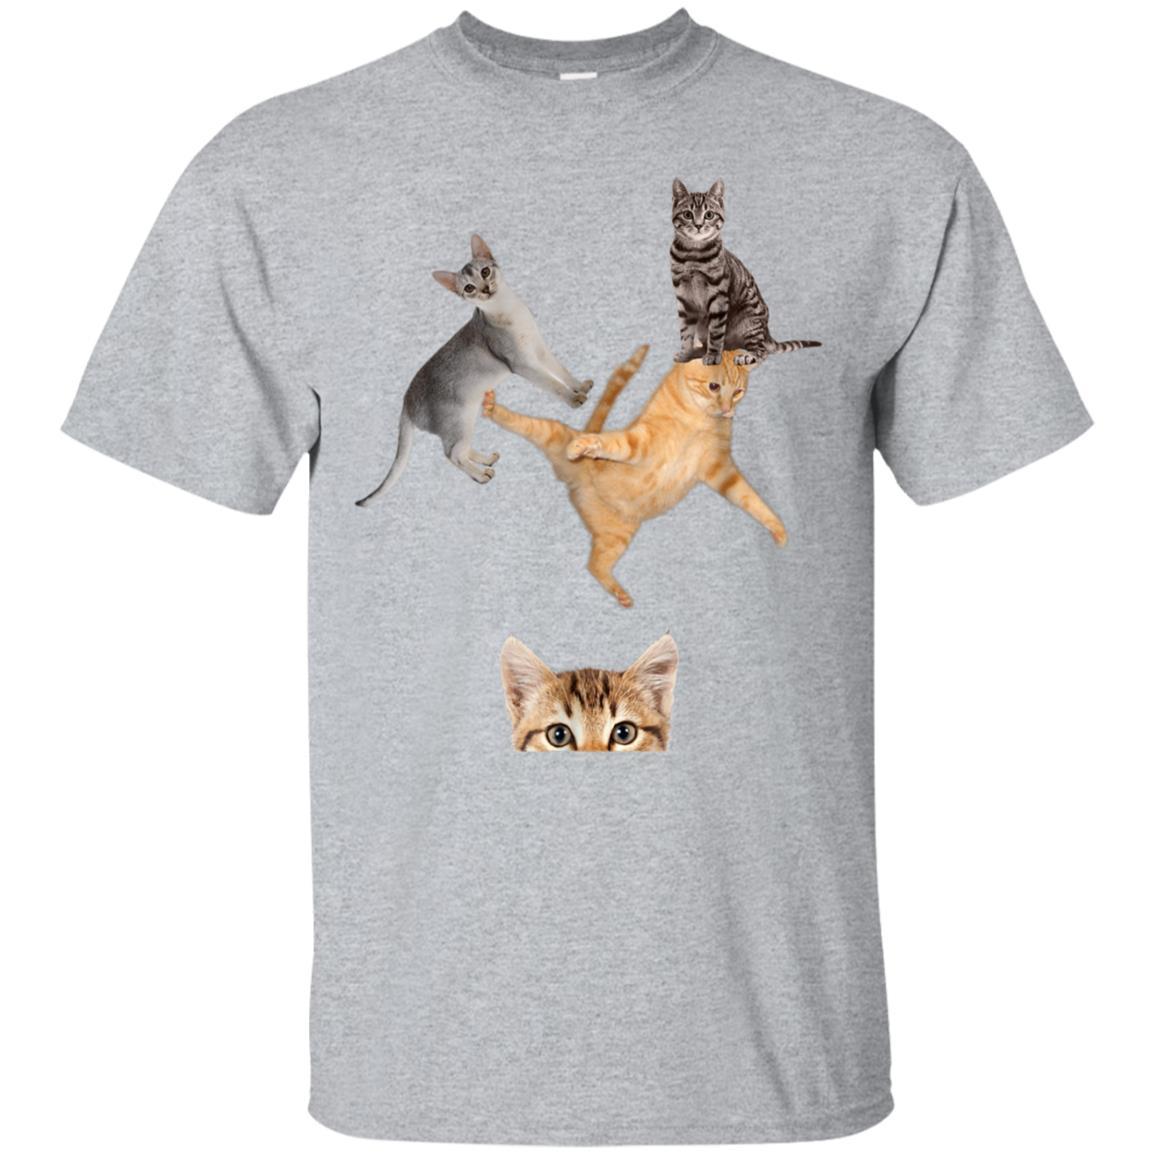 Crazy Cat Lady Halloween Costume T Shirt 99promocode